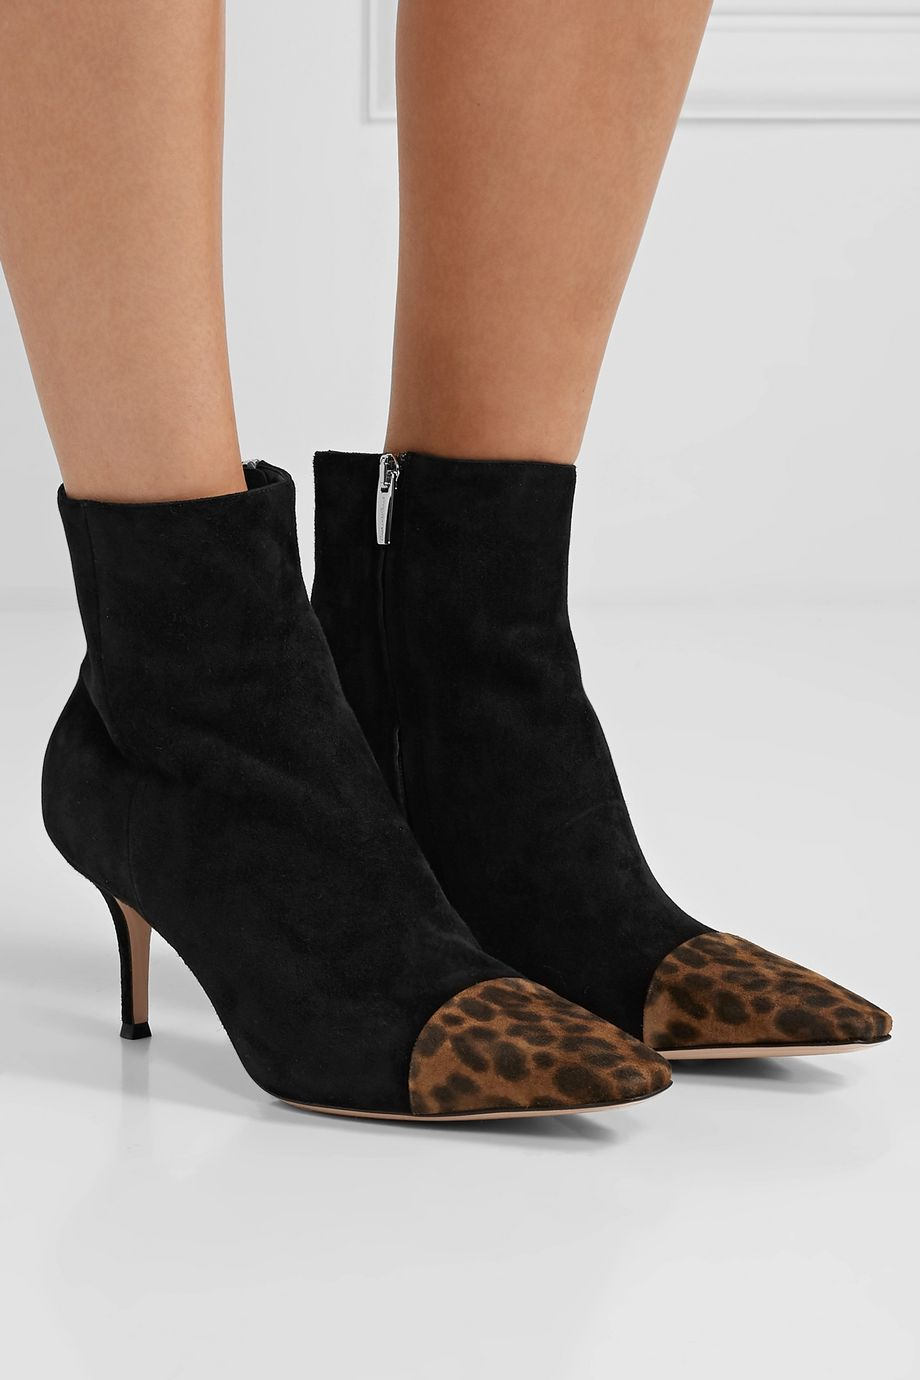 Gianvito Rossi 70 two-tone suede ankle boots